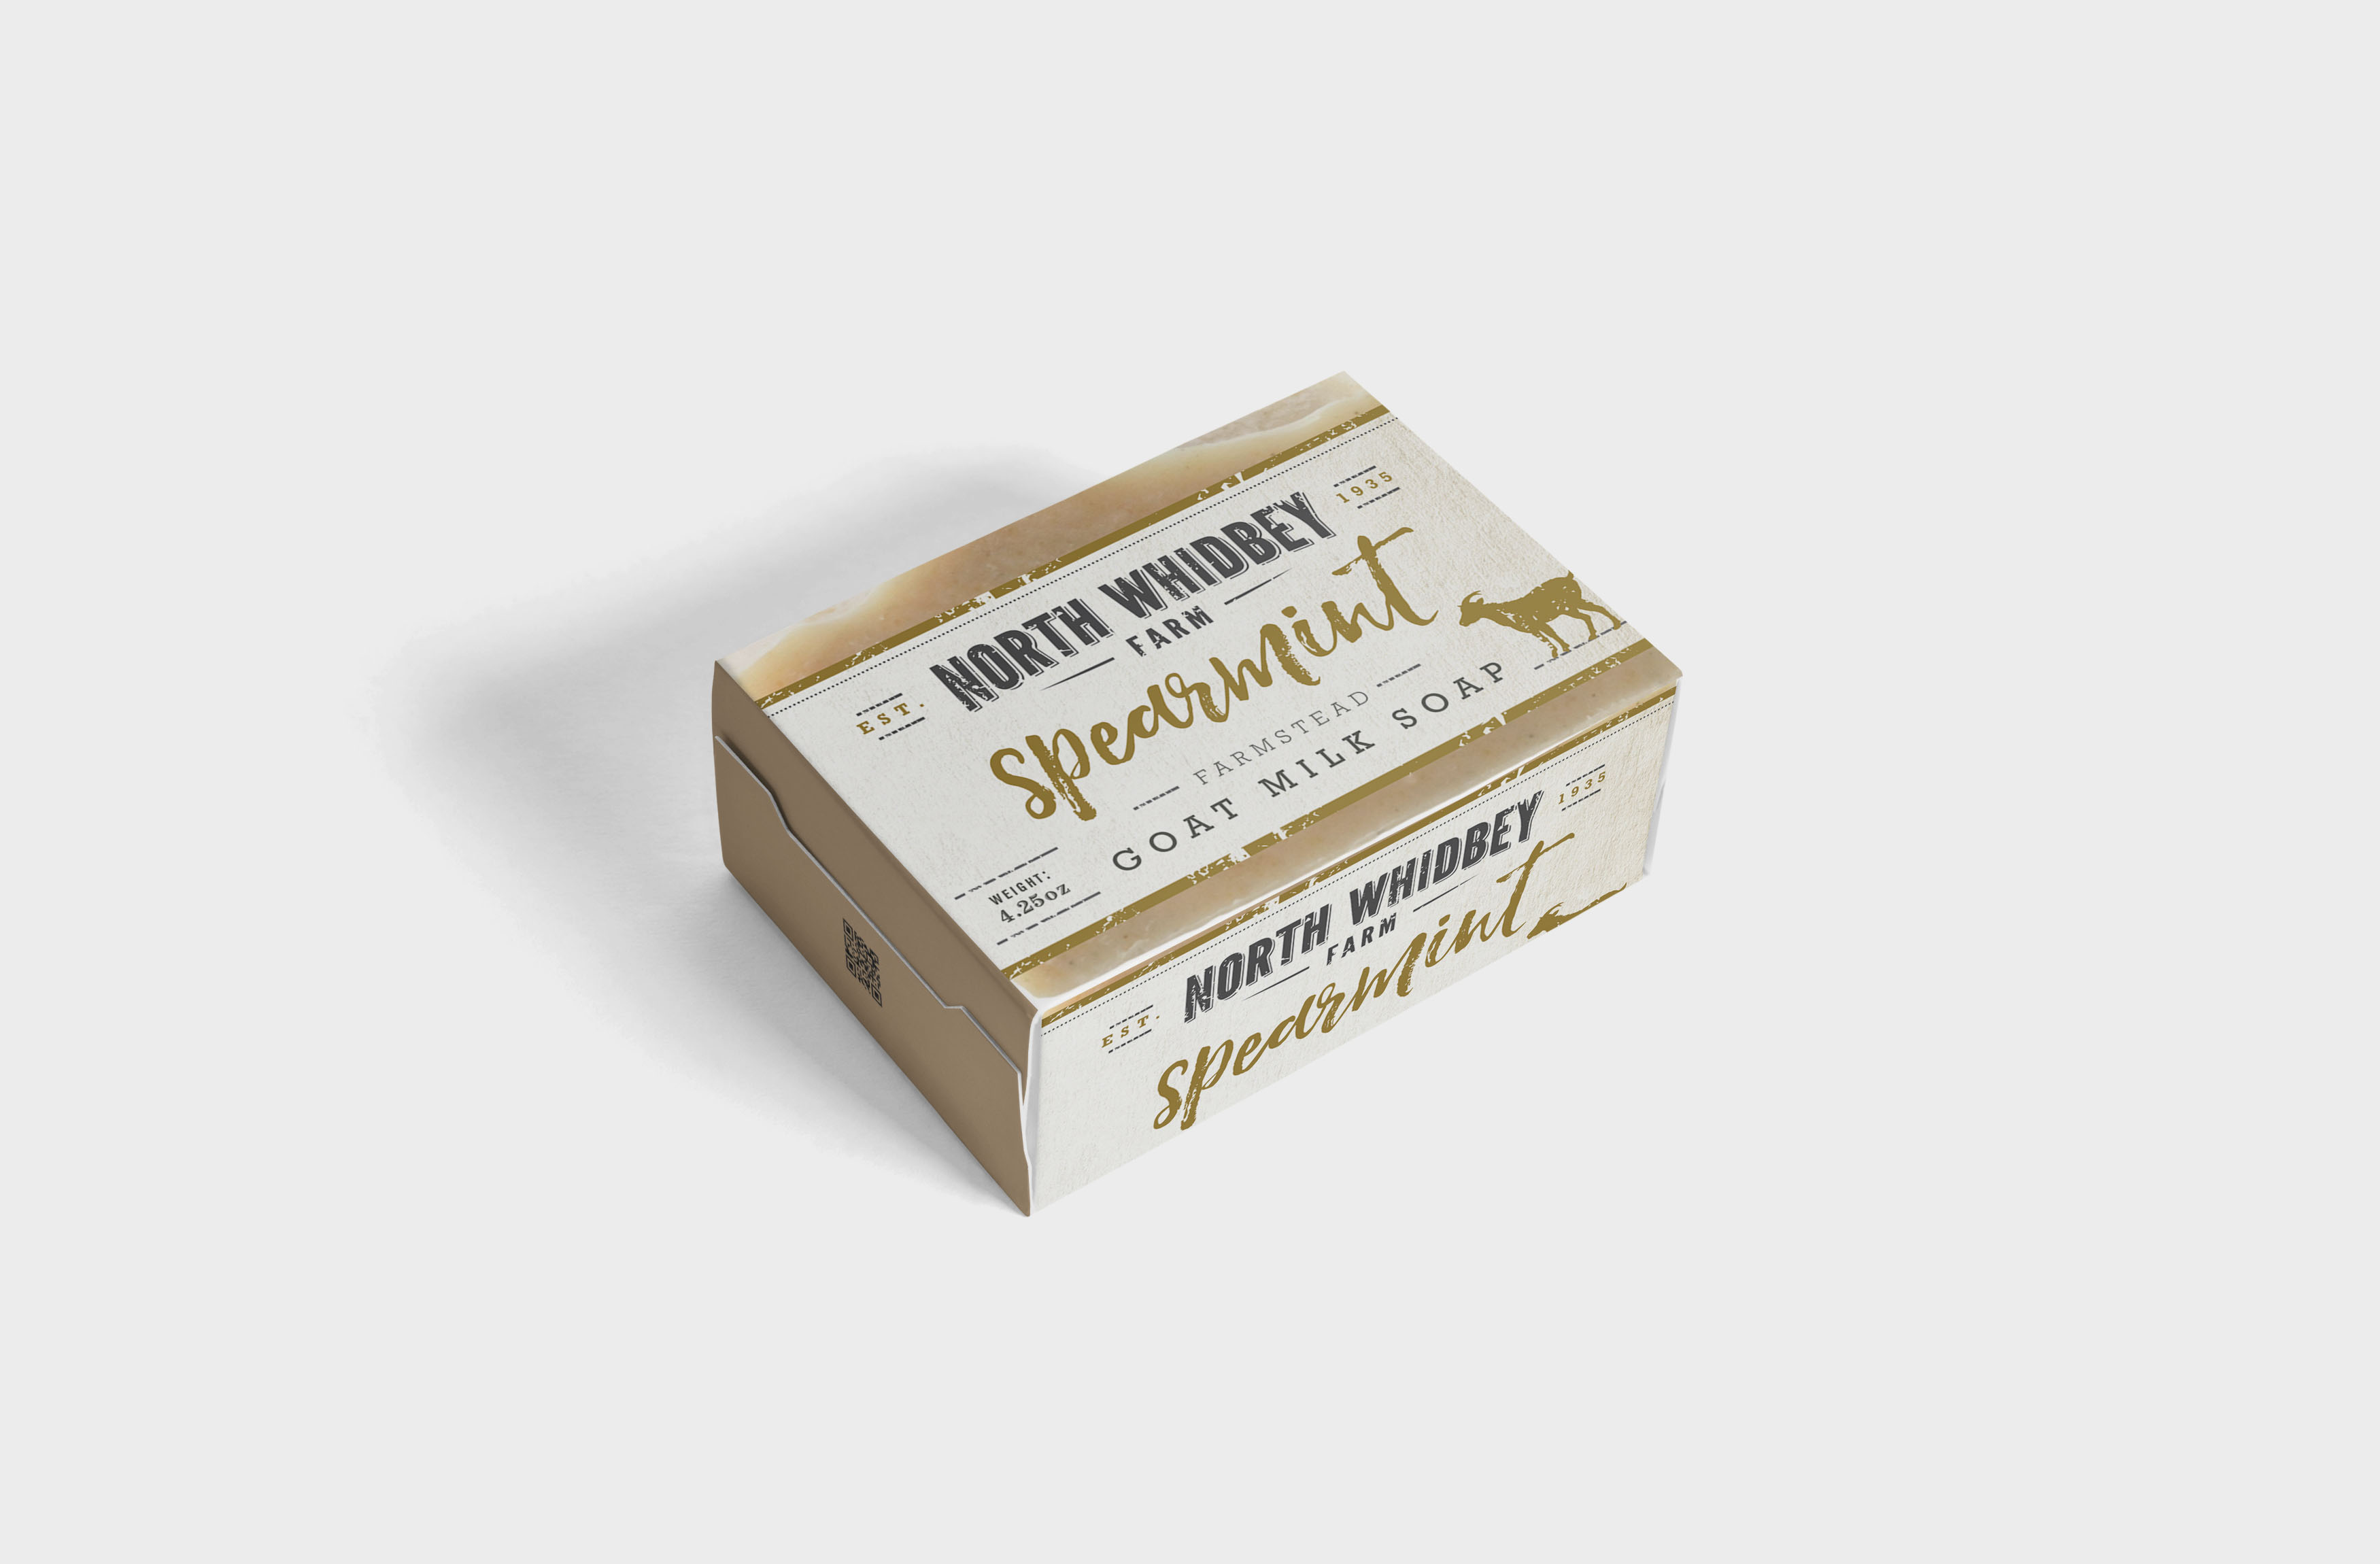 Premium Beauty Soap Label Mockup